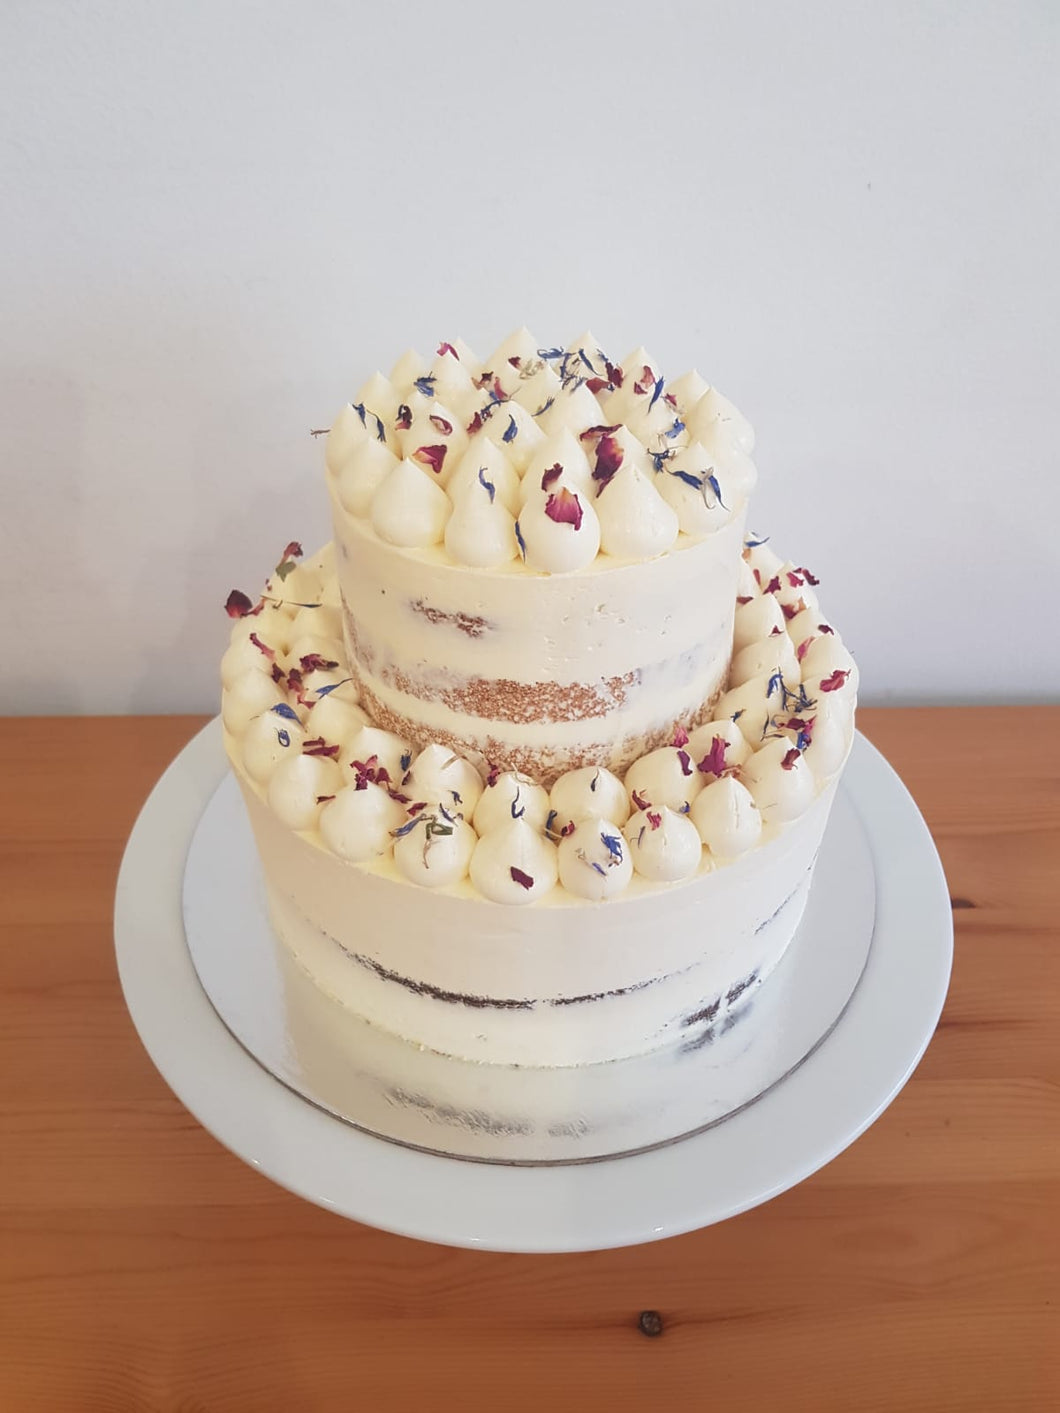 Keto Special Occasion Cakes - VANILLA ALMOND -Naked- [Call (03) 9853 5771 to Order Cake-PICK UP ONLY]